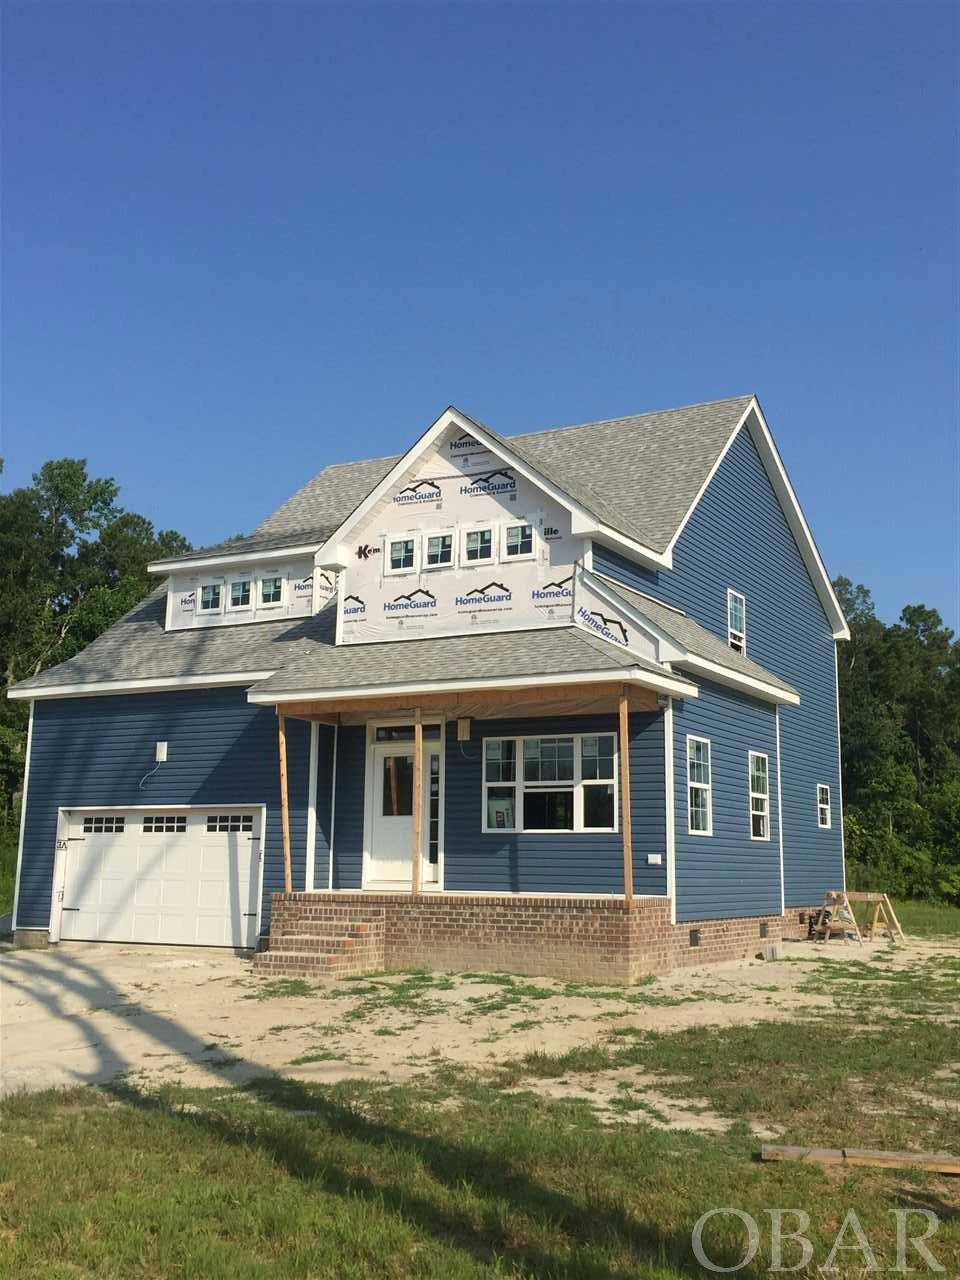 102 Croatan Court,Moyock,NC 27958,4 Bedrooms Bedrooms,4 BathroomsBathrooms,Residential,Croatan Court,100119